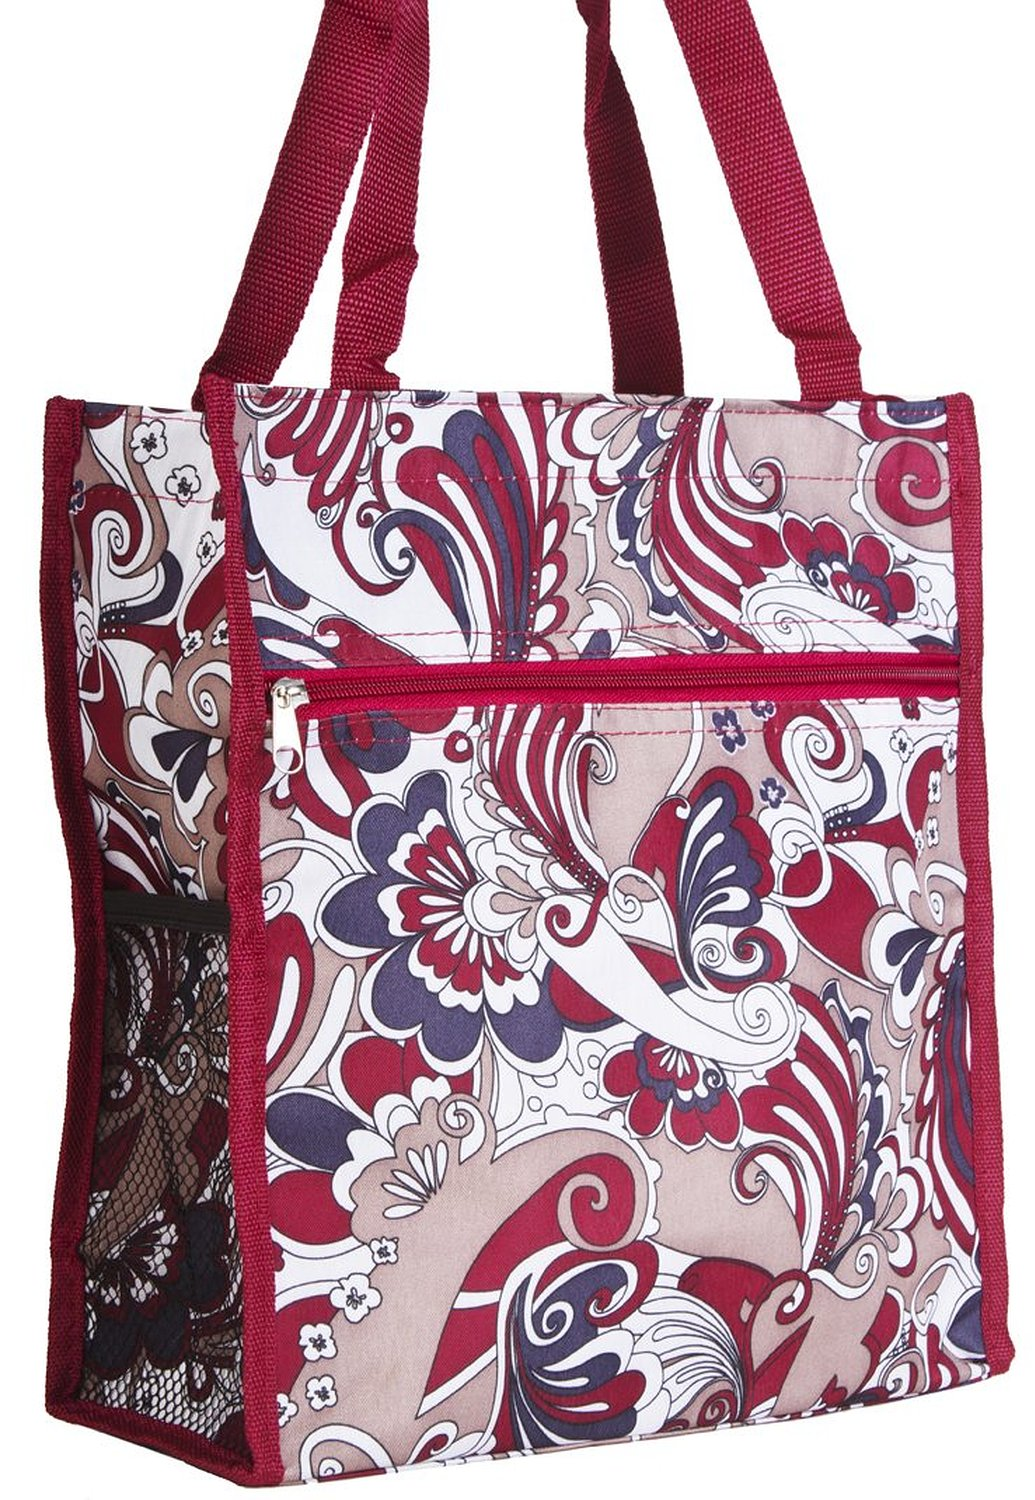 c6e713231a Get Quotations · Red Paisley Travel Tote Bag with Coin Purse